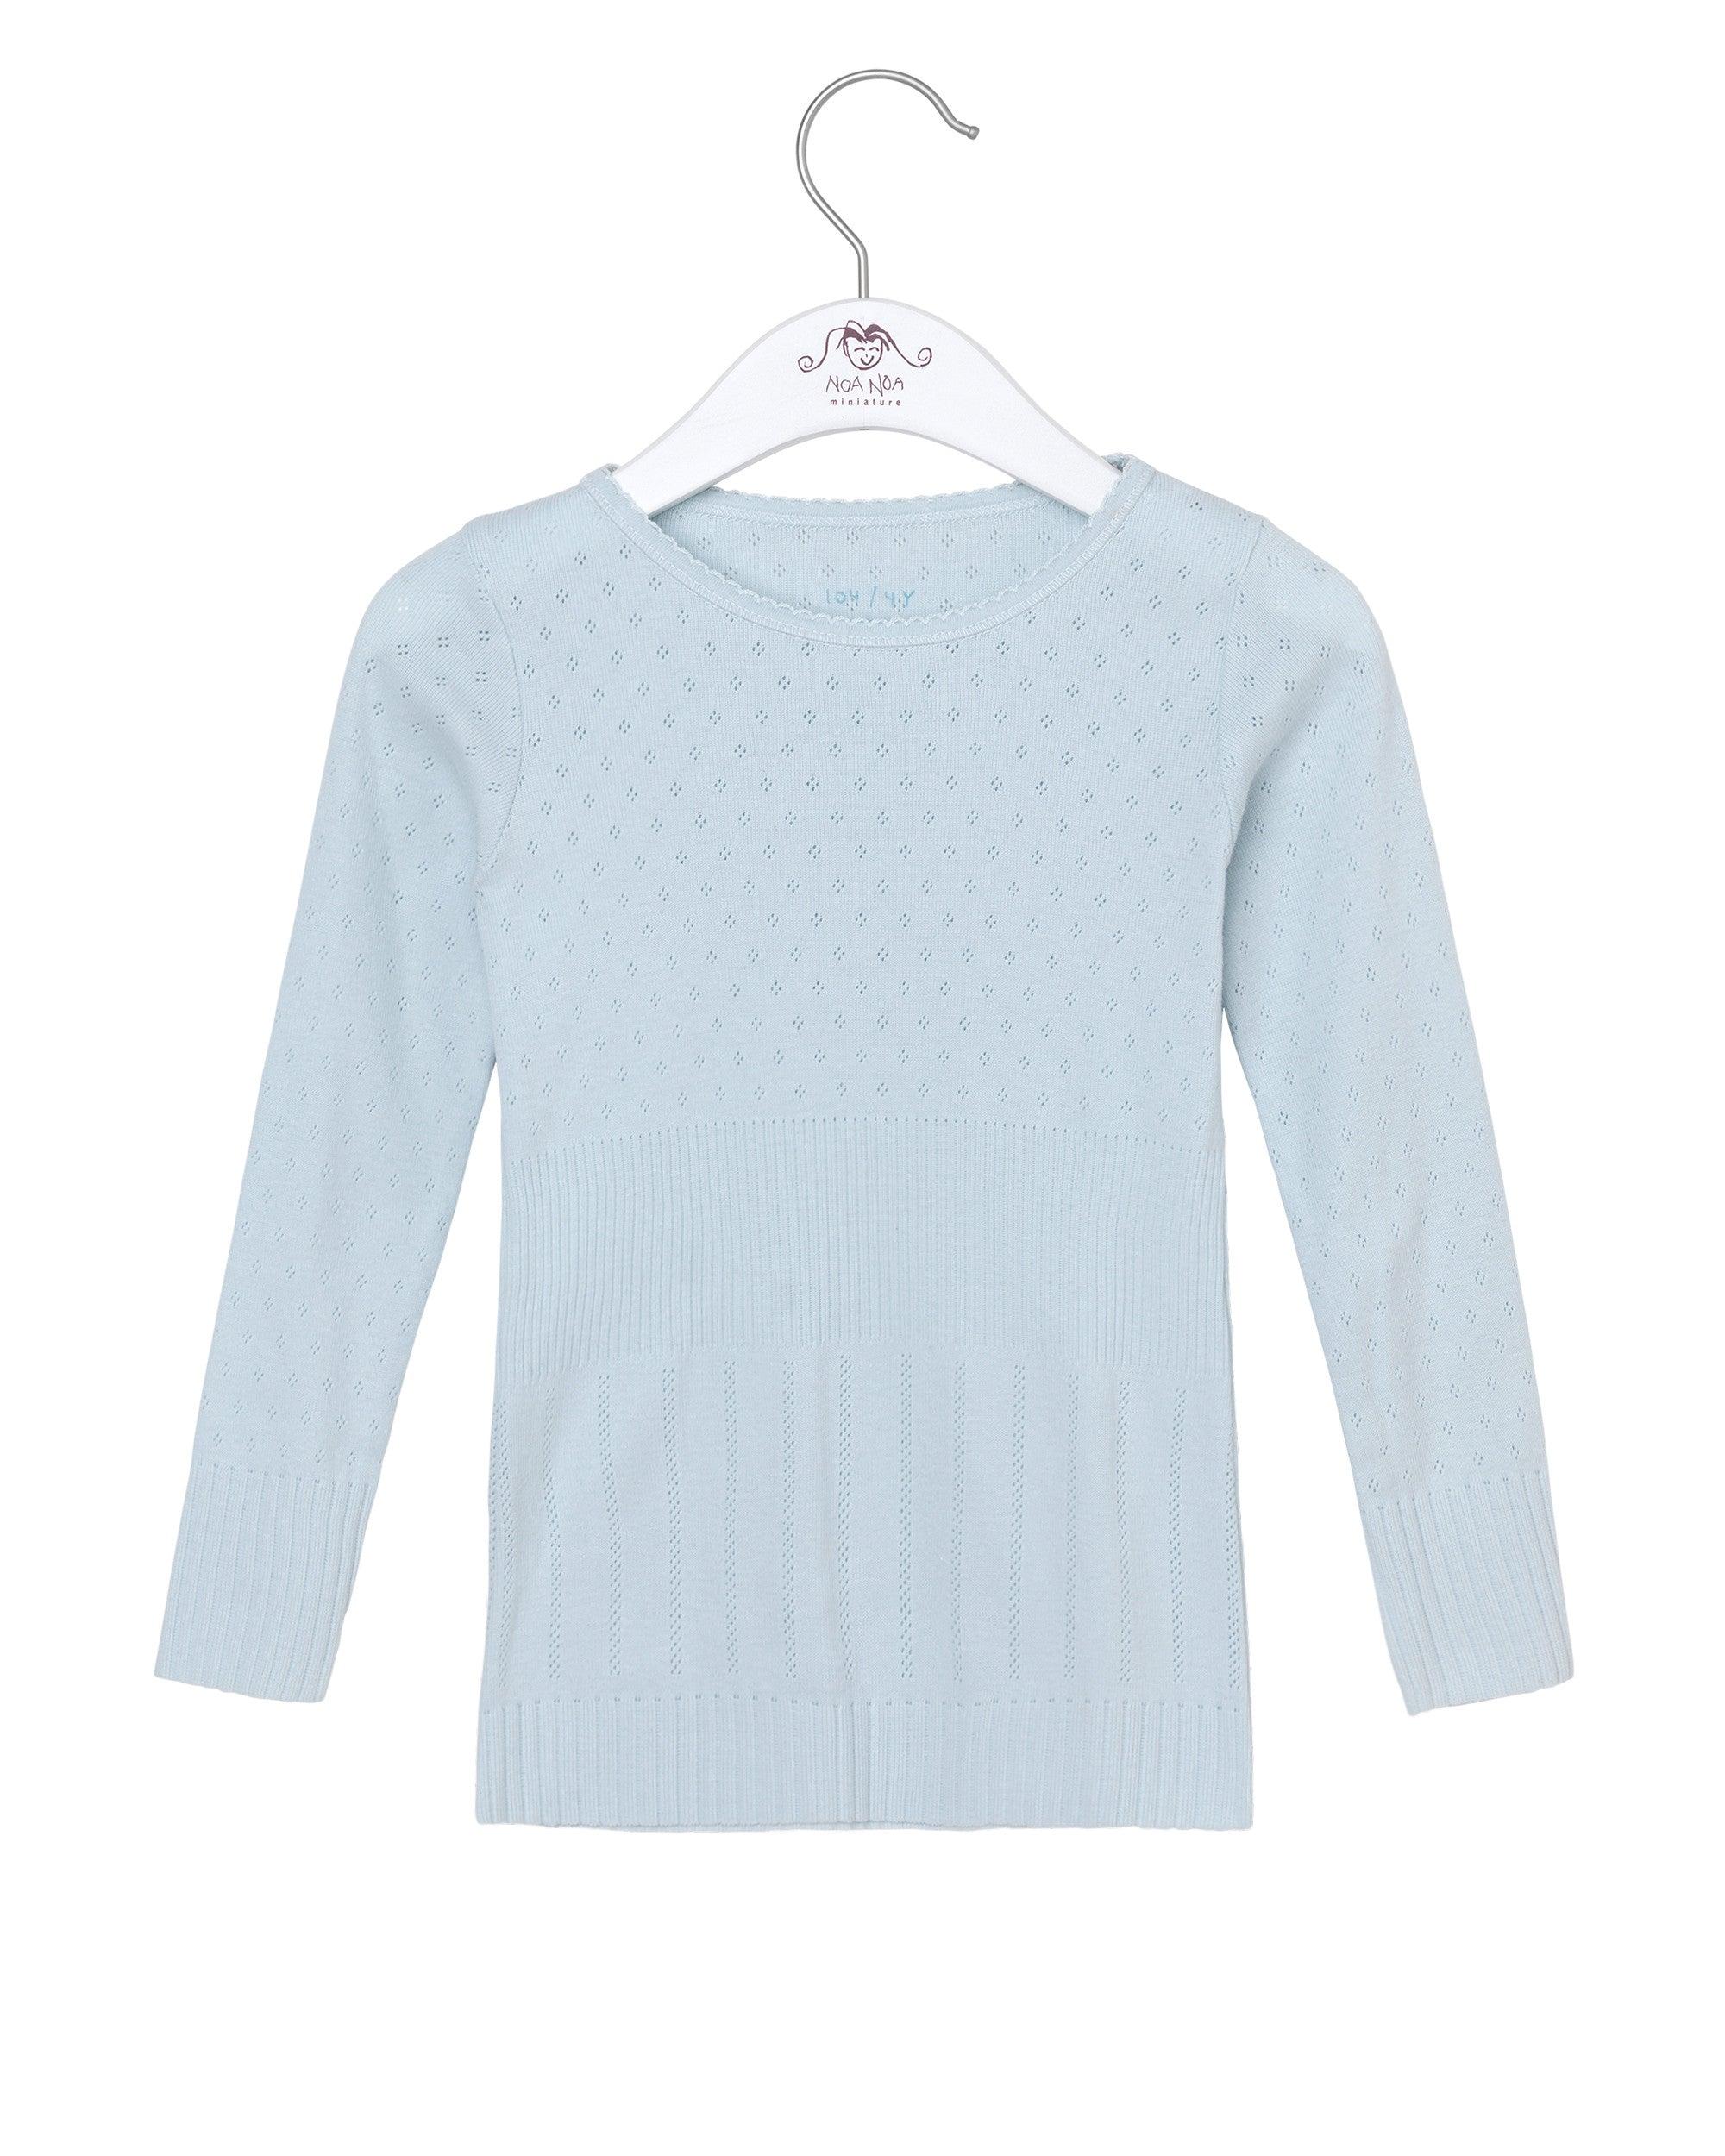 c21ca8faa17e5 Long Sleeved Blouse with Pointelle Pattern